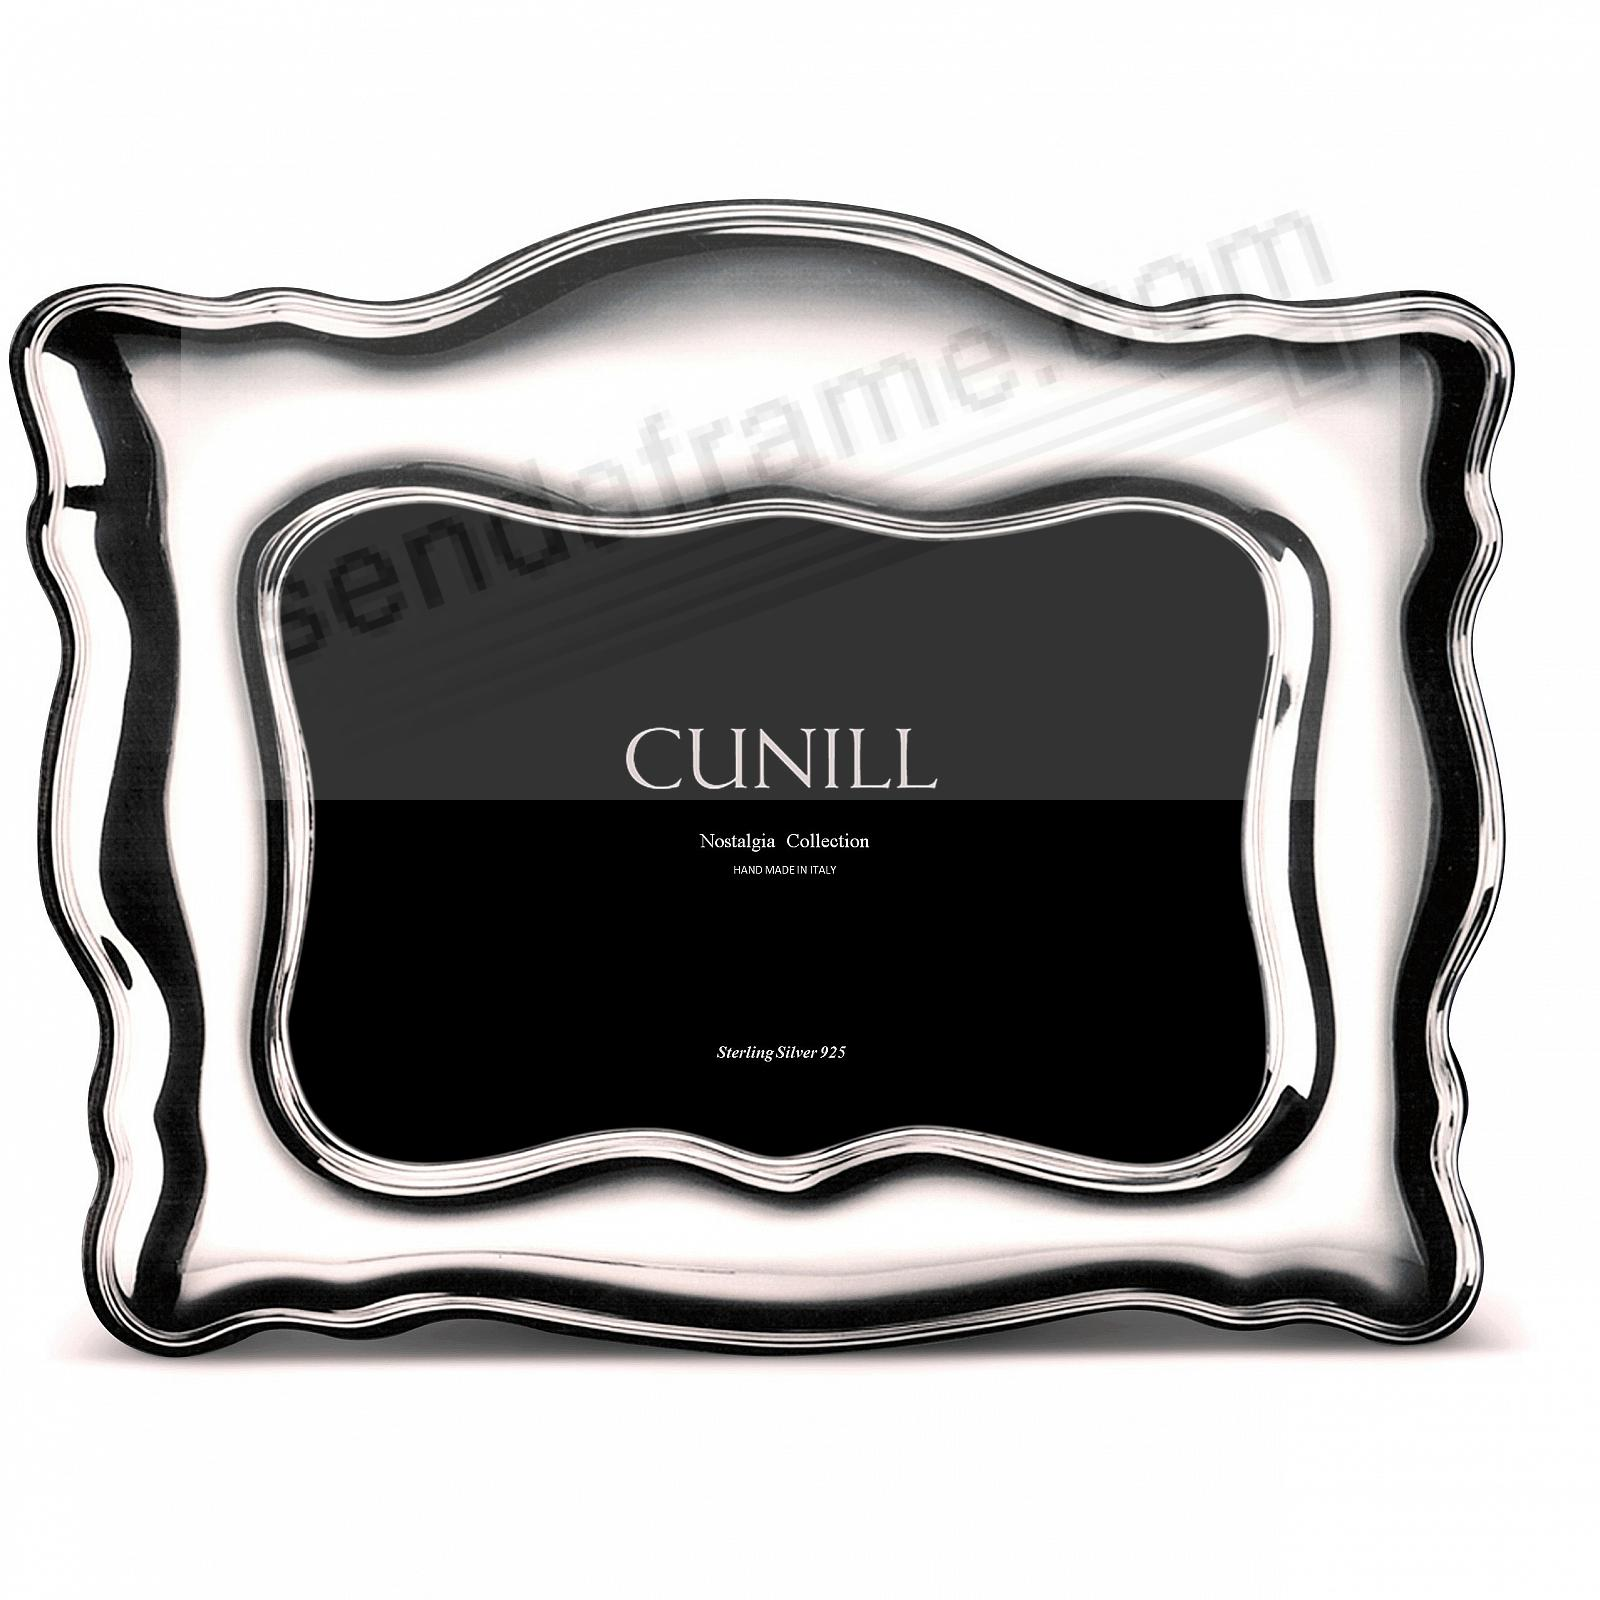 NAPLES PLAIN Sterling Silver Luxe 5x7 frame<br>by Cunill®